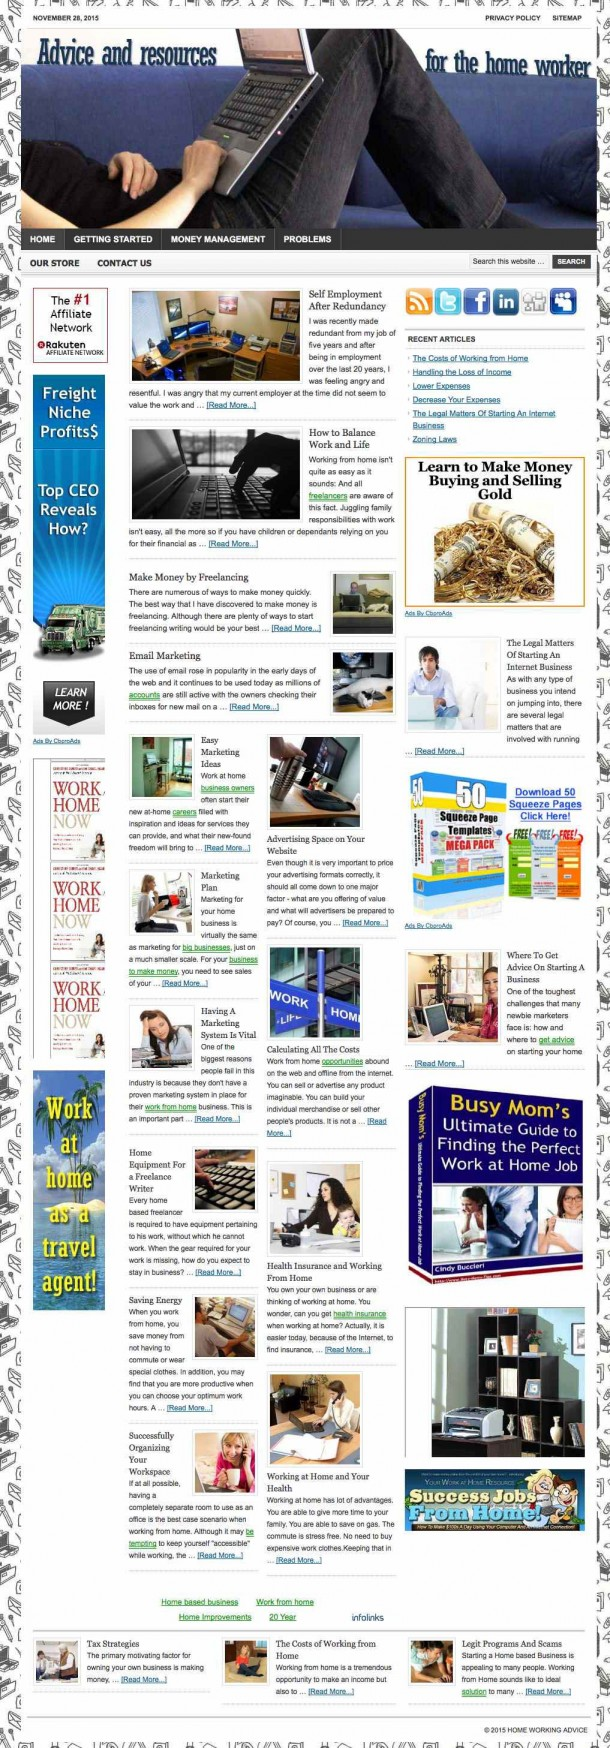 Home_working_advice_Advice,_resources_and_getting_started_guide_for_the_home_worker